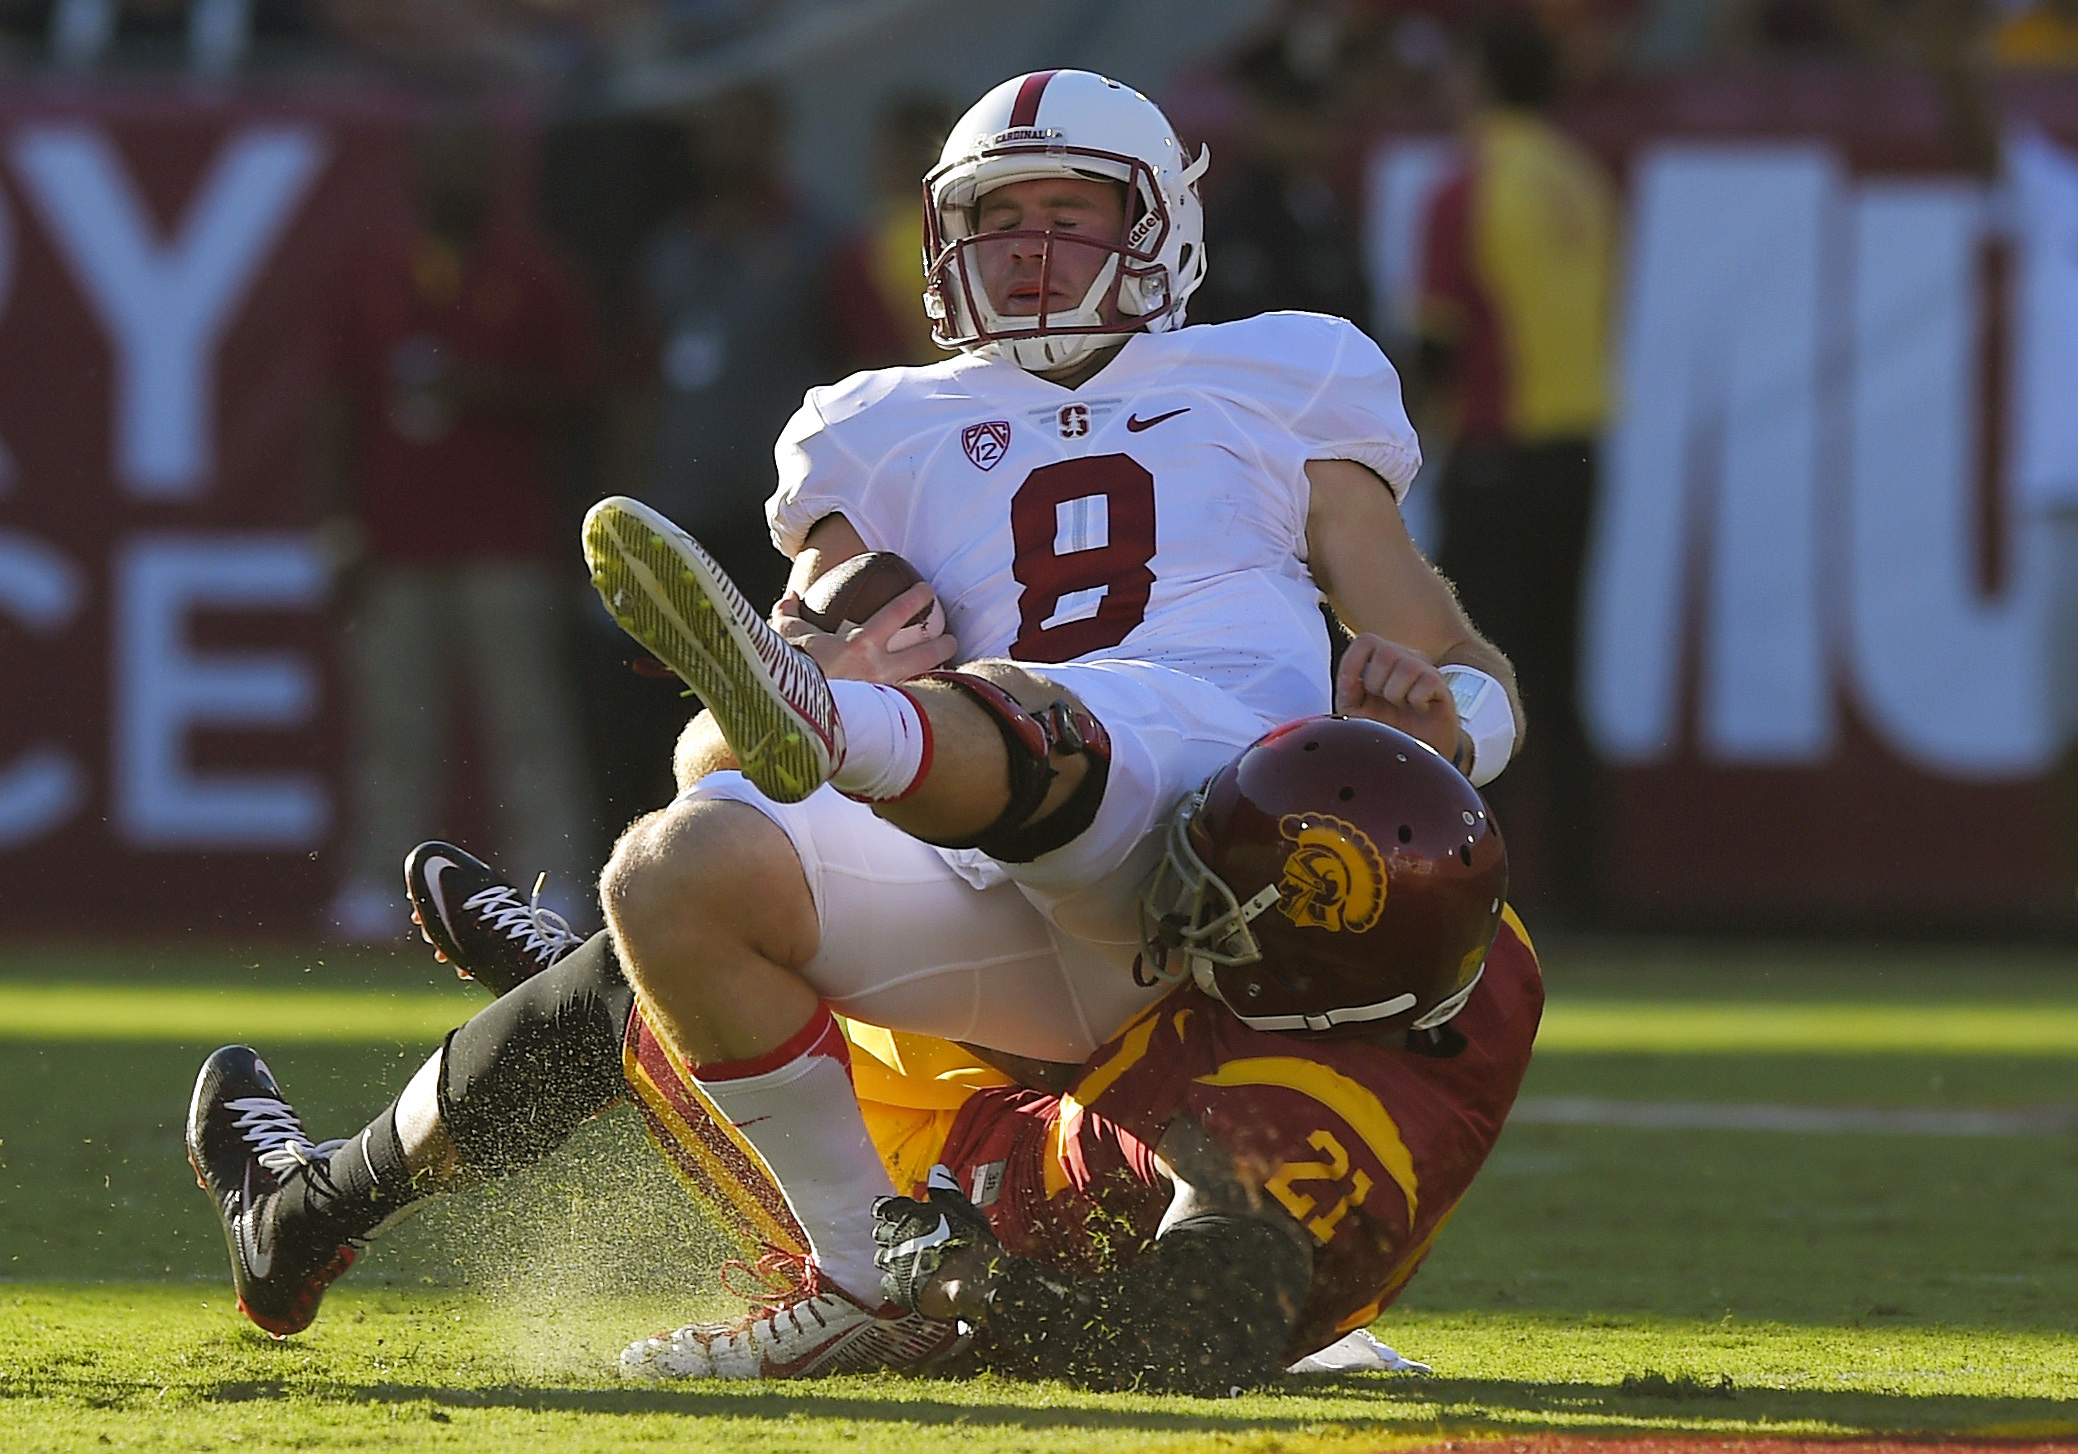 FILE - In this Sept. 19, 2015, file photo, Stanford quarterback Kevin Hogan, top, is sacked by Southern California linebacker Su'a Cravens during an NCAA college football game in Los Angeles  Even if Stanford doesn't have quarterback Hogan, Oregon State s